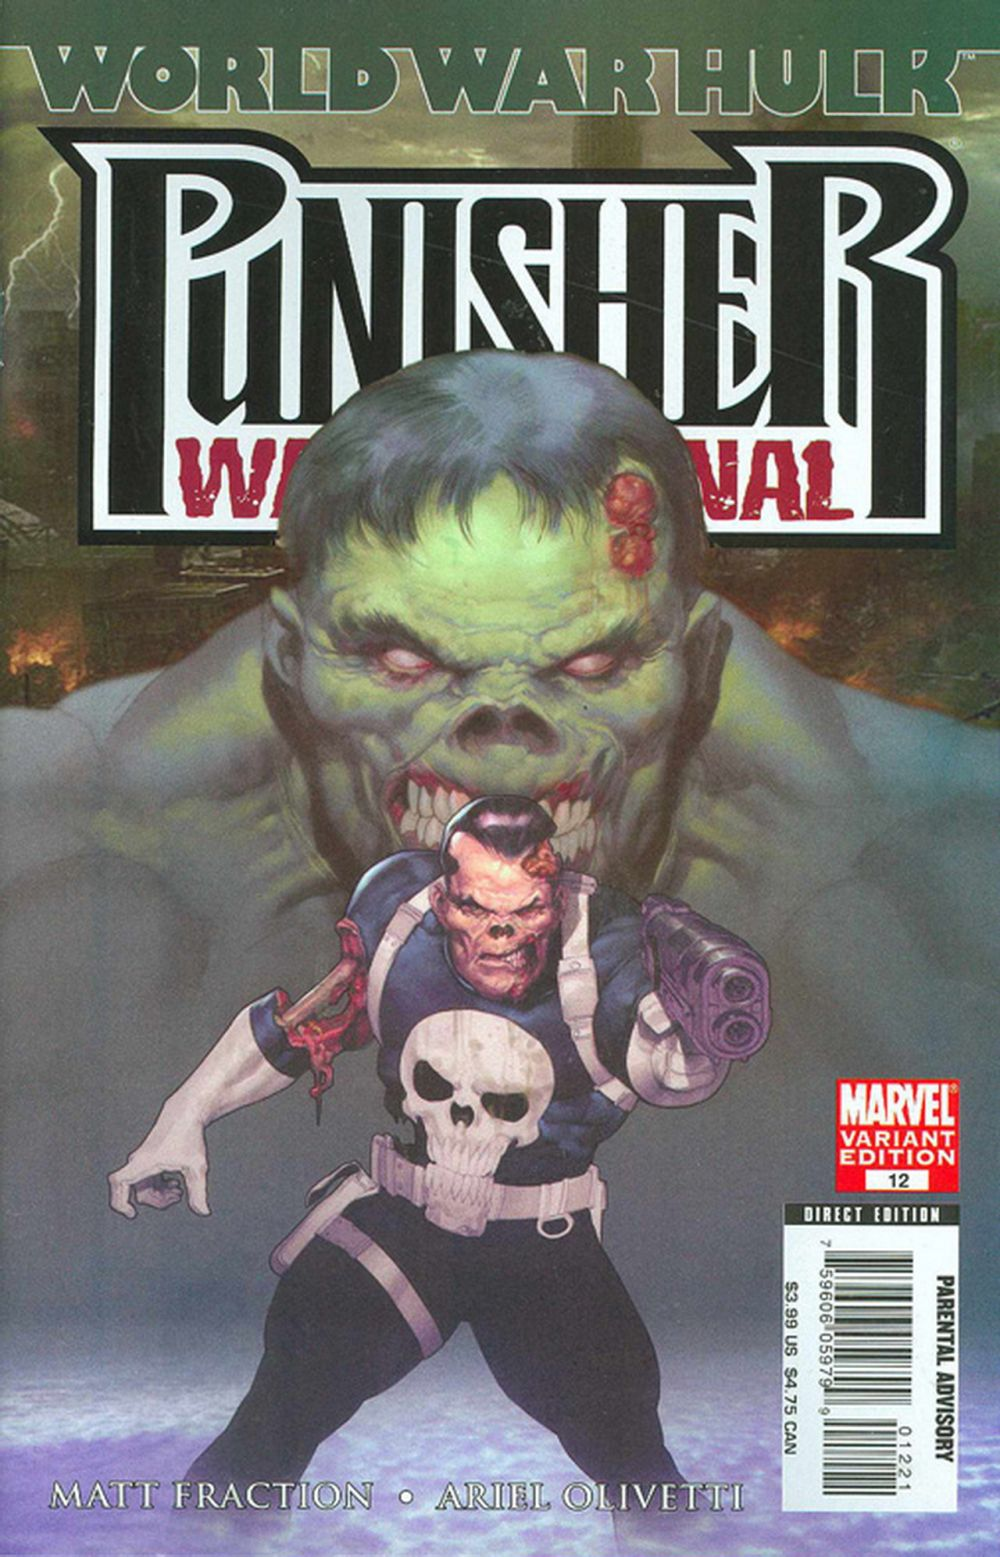 Punisher: War Journal [Marvel] V2 0012b – Zombie.jpg